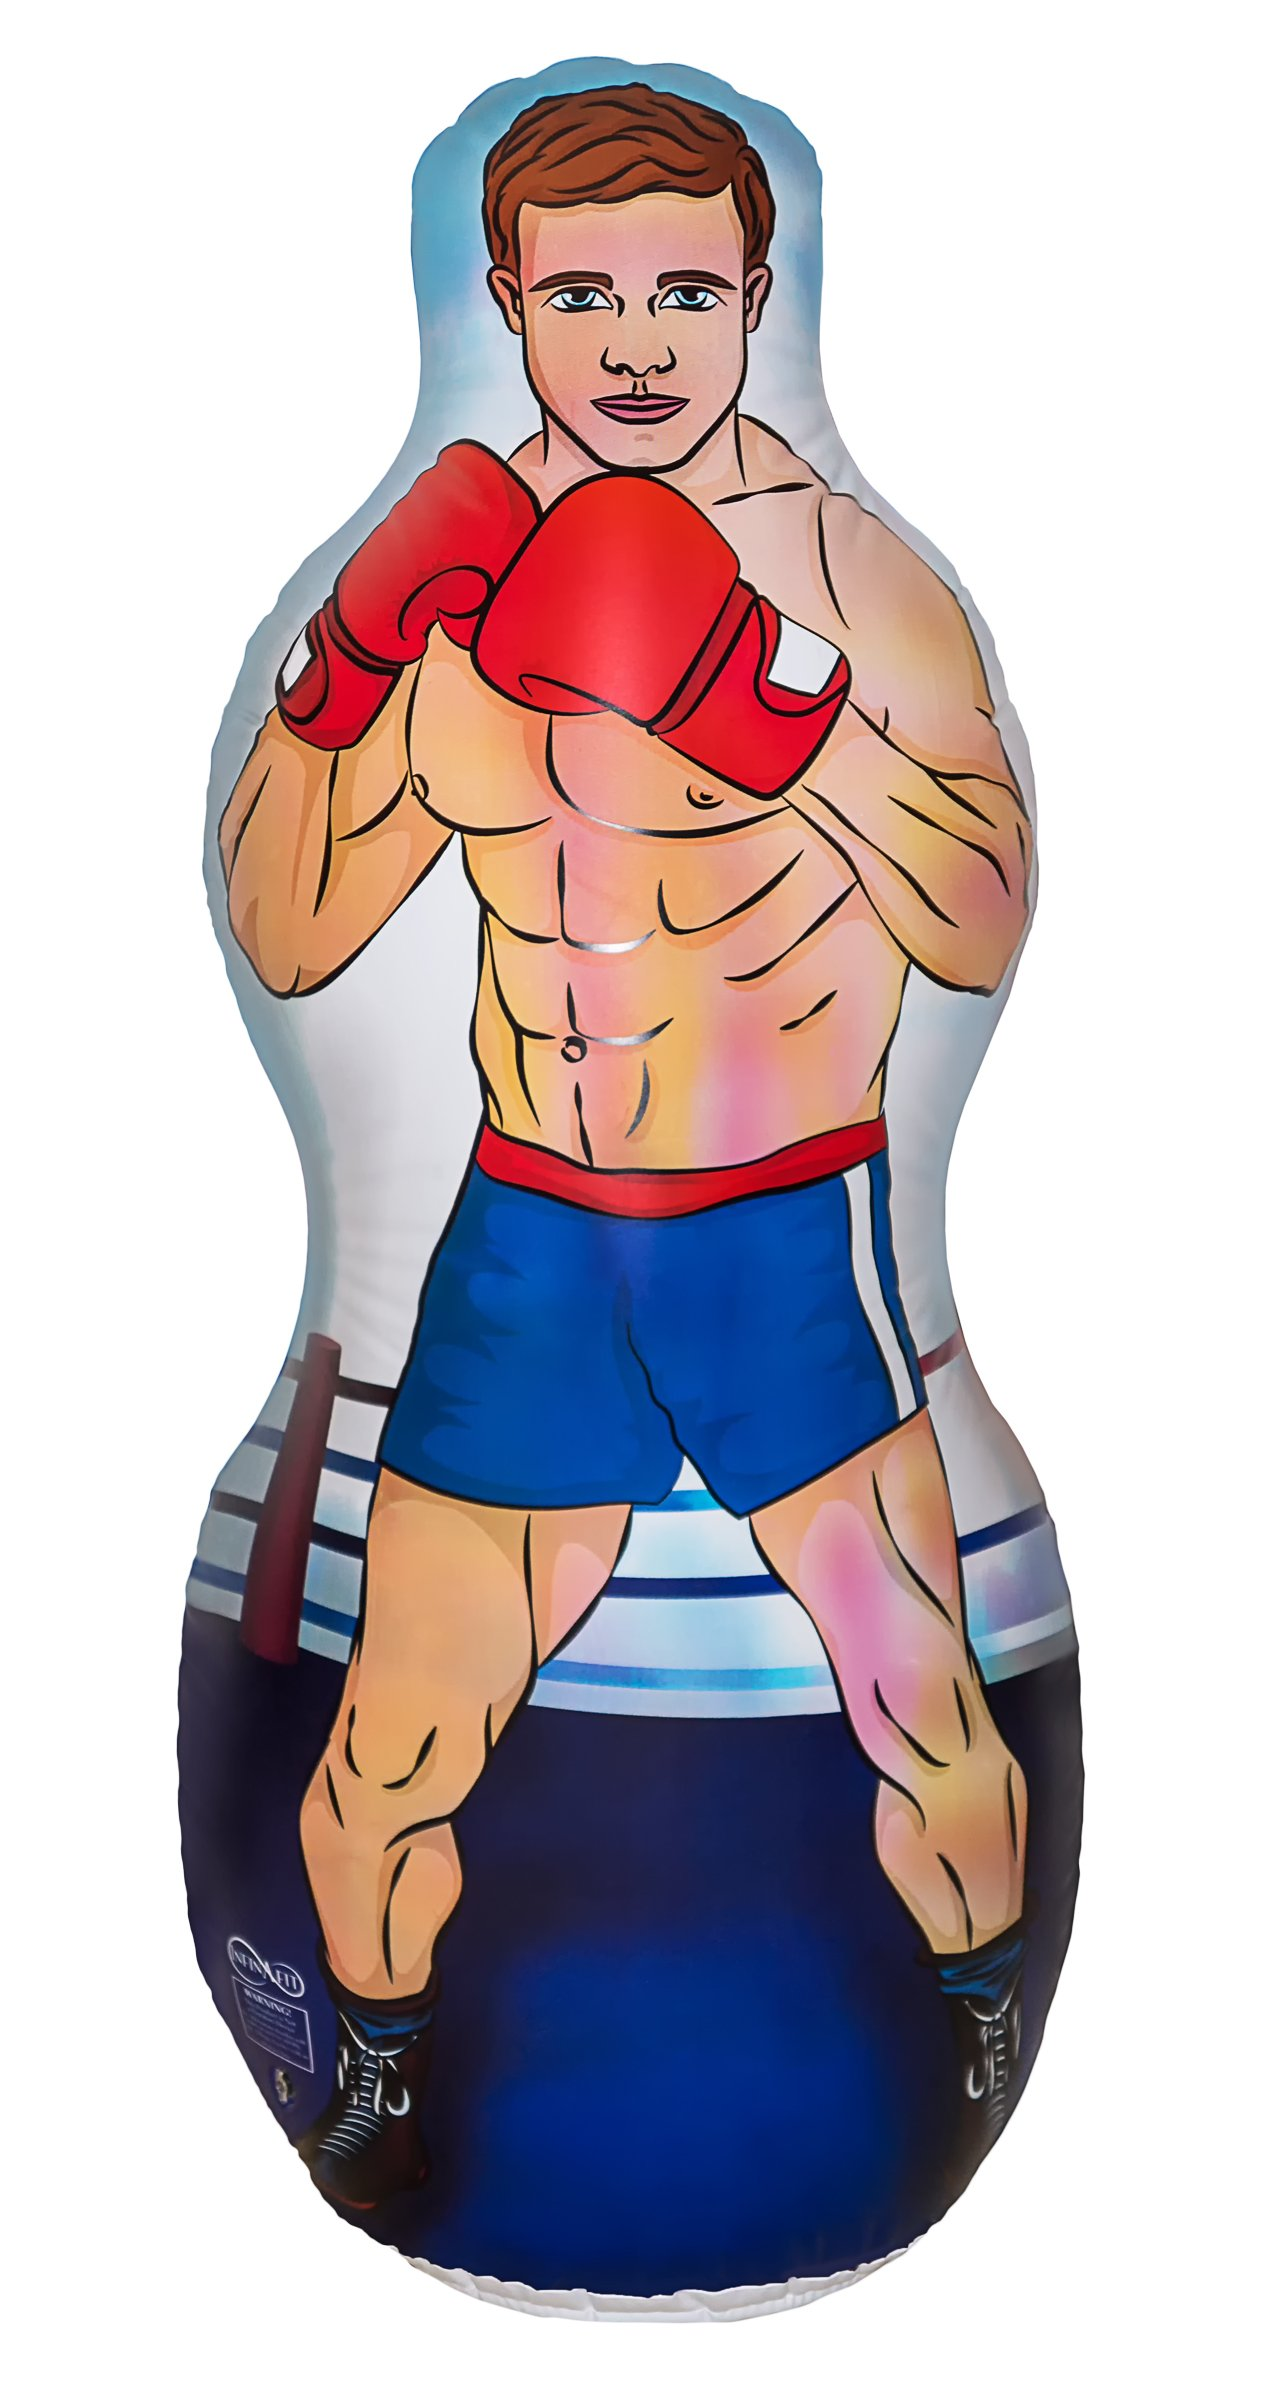 Infinafit Inflatable Two Sided Karate and Boxing Punching Bag   Includes One Inflatable 5 Foot Tall Bop Bag with Illustration of a Karate Master on One Side and Boxer on Reverse Side by ImpiriLux (Image #3)